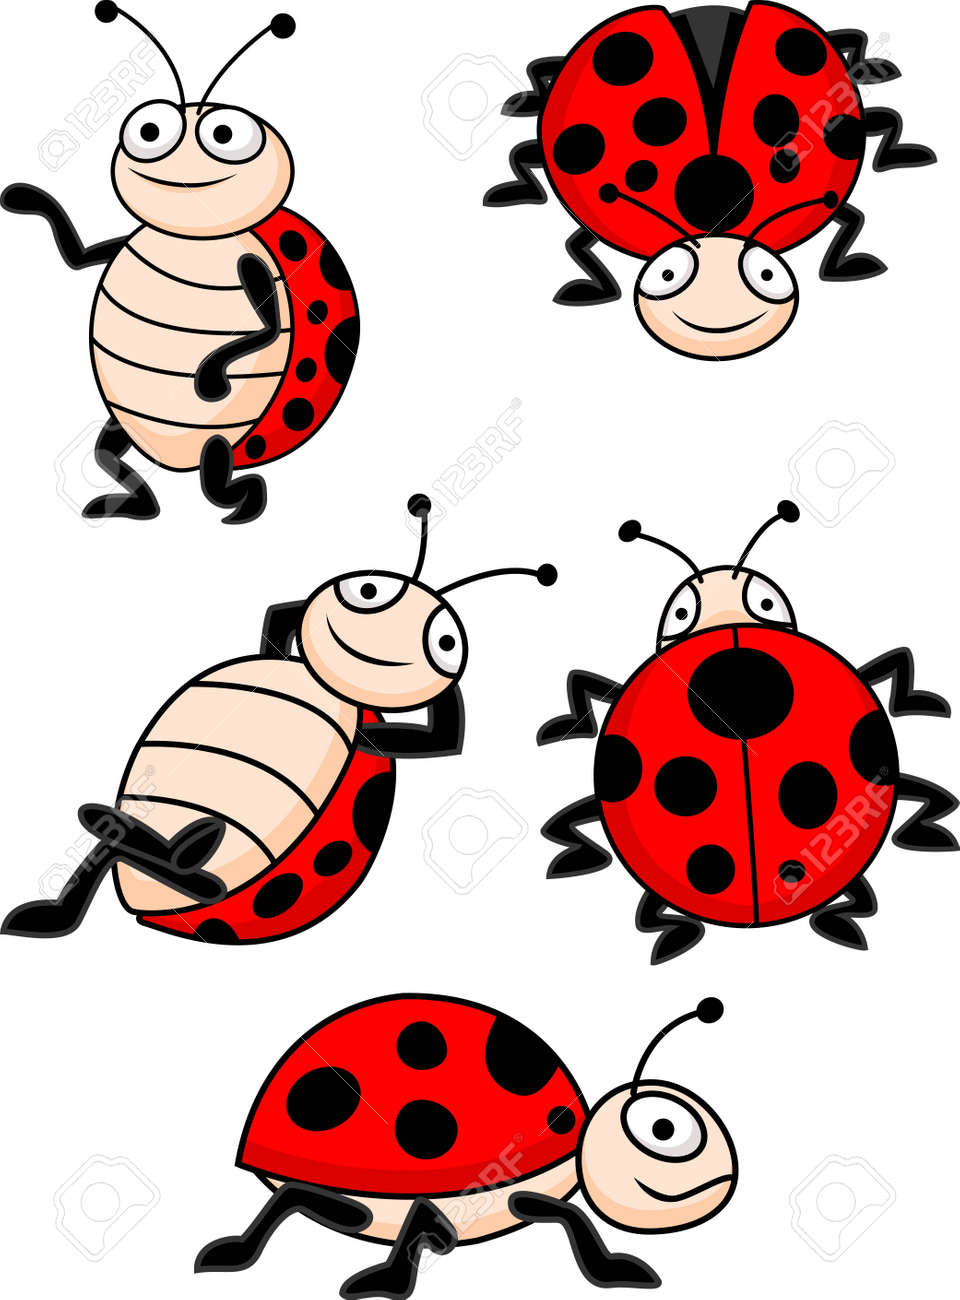 illustration of Ladybug collection Stock Vector - 14320722